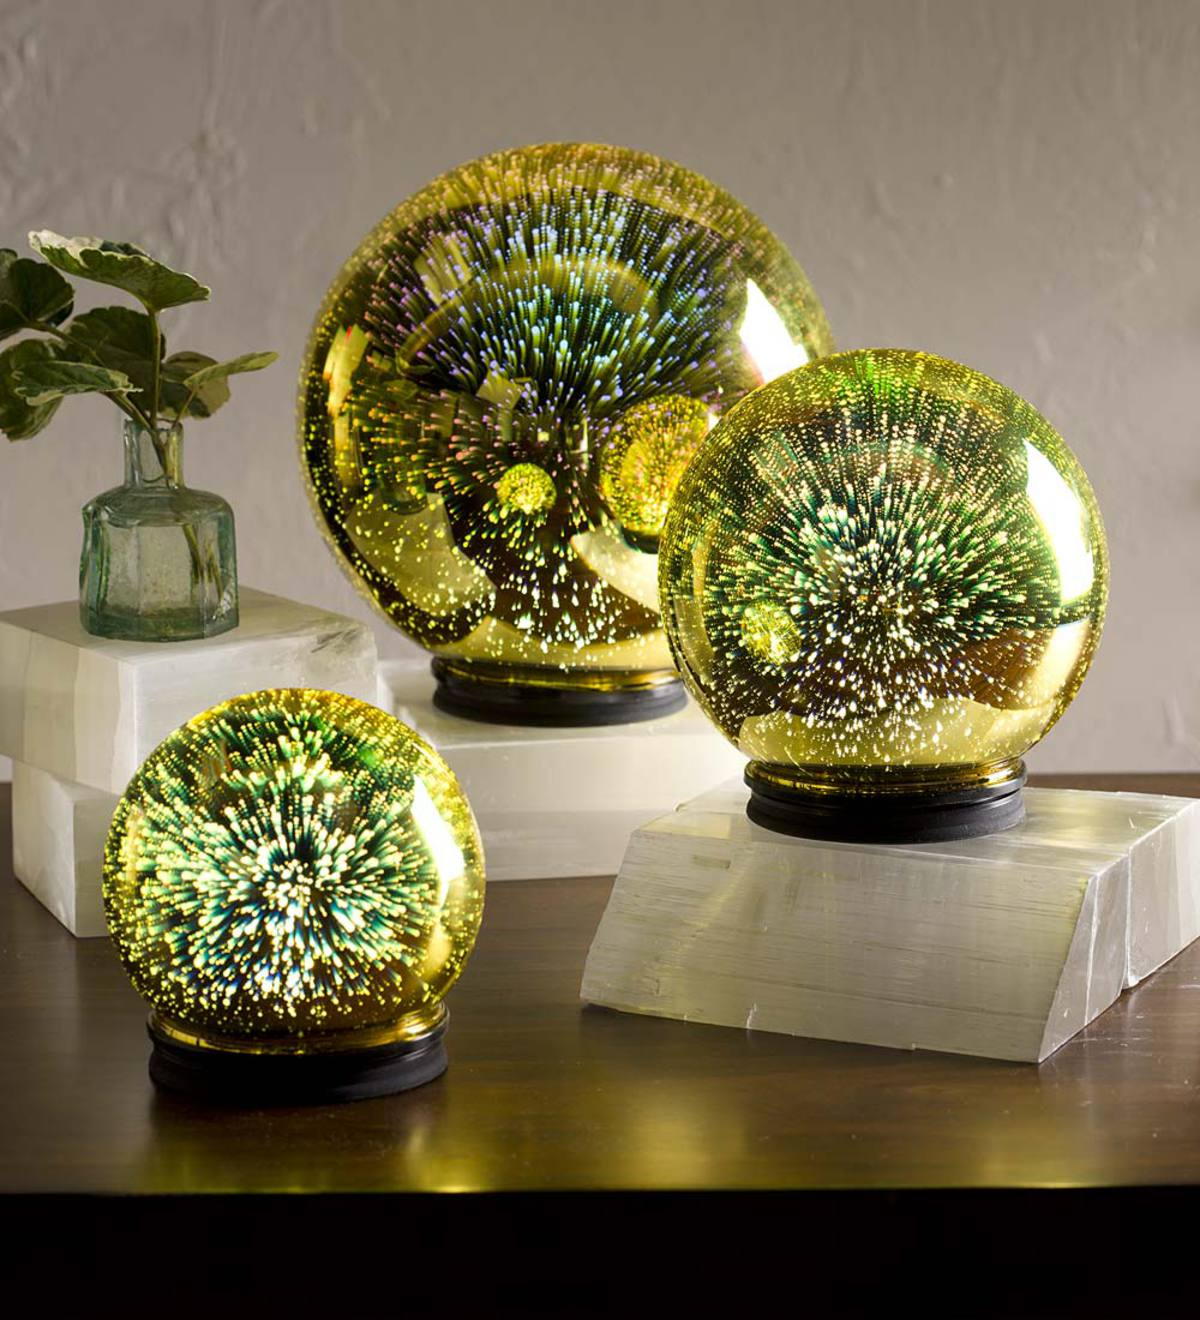 3D Lighted Mercury Glass Balls, Set of 3 - Free 2 Day Amazon Delivery - Yellow